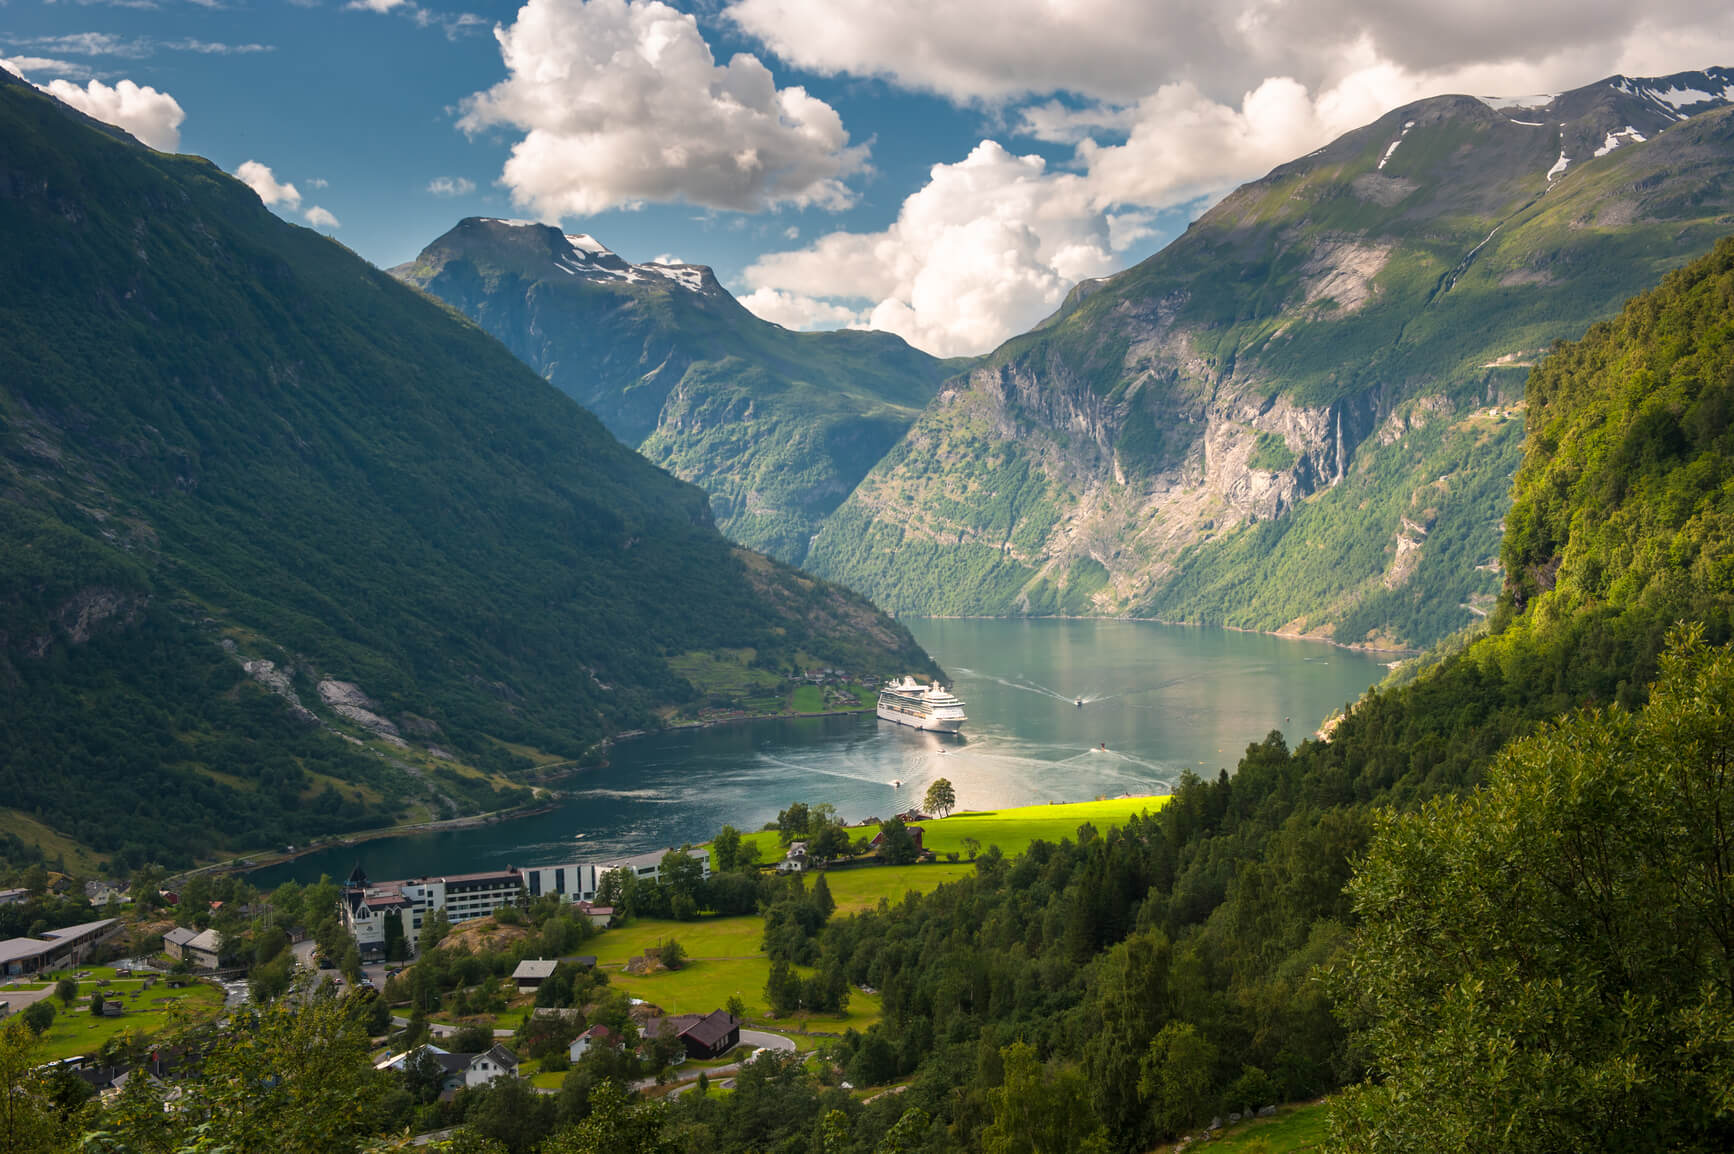 Los Angeles to Oslo, Norway for only $416 roundtrip